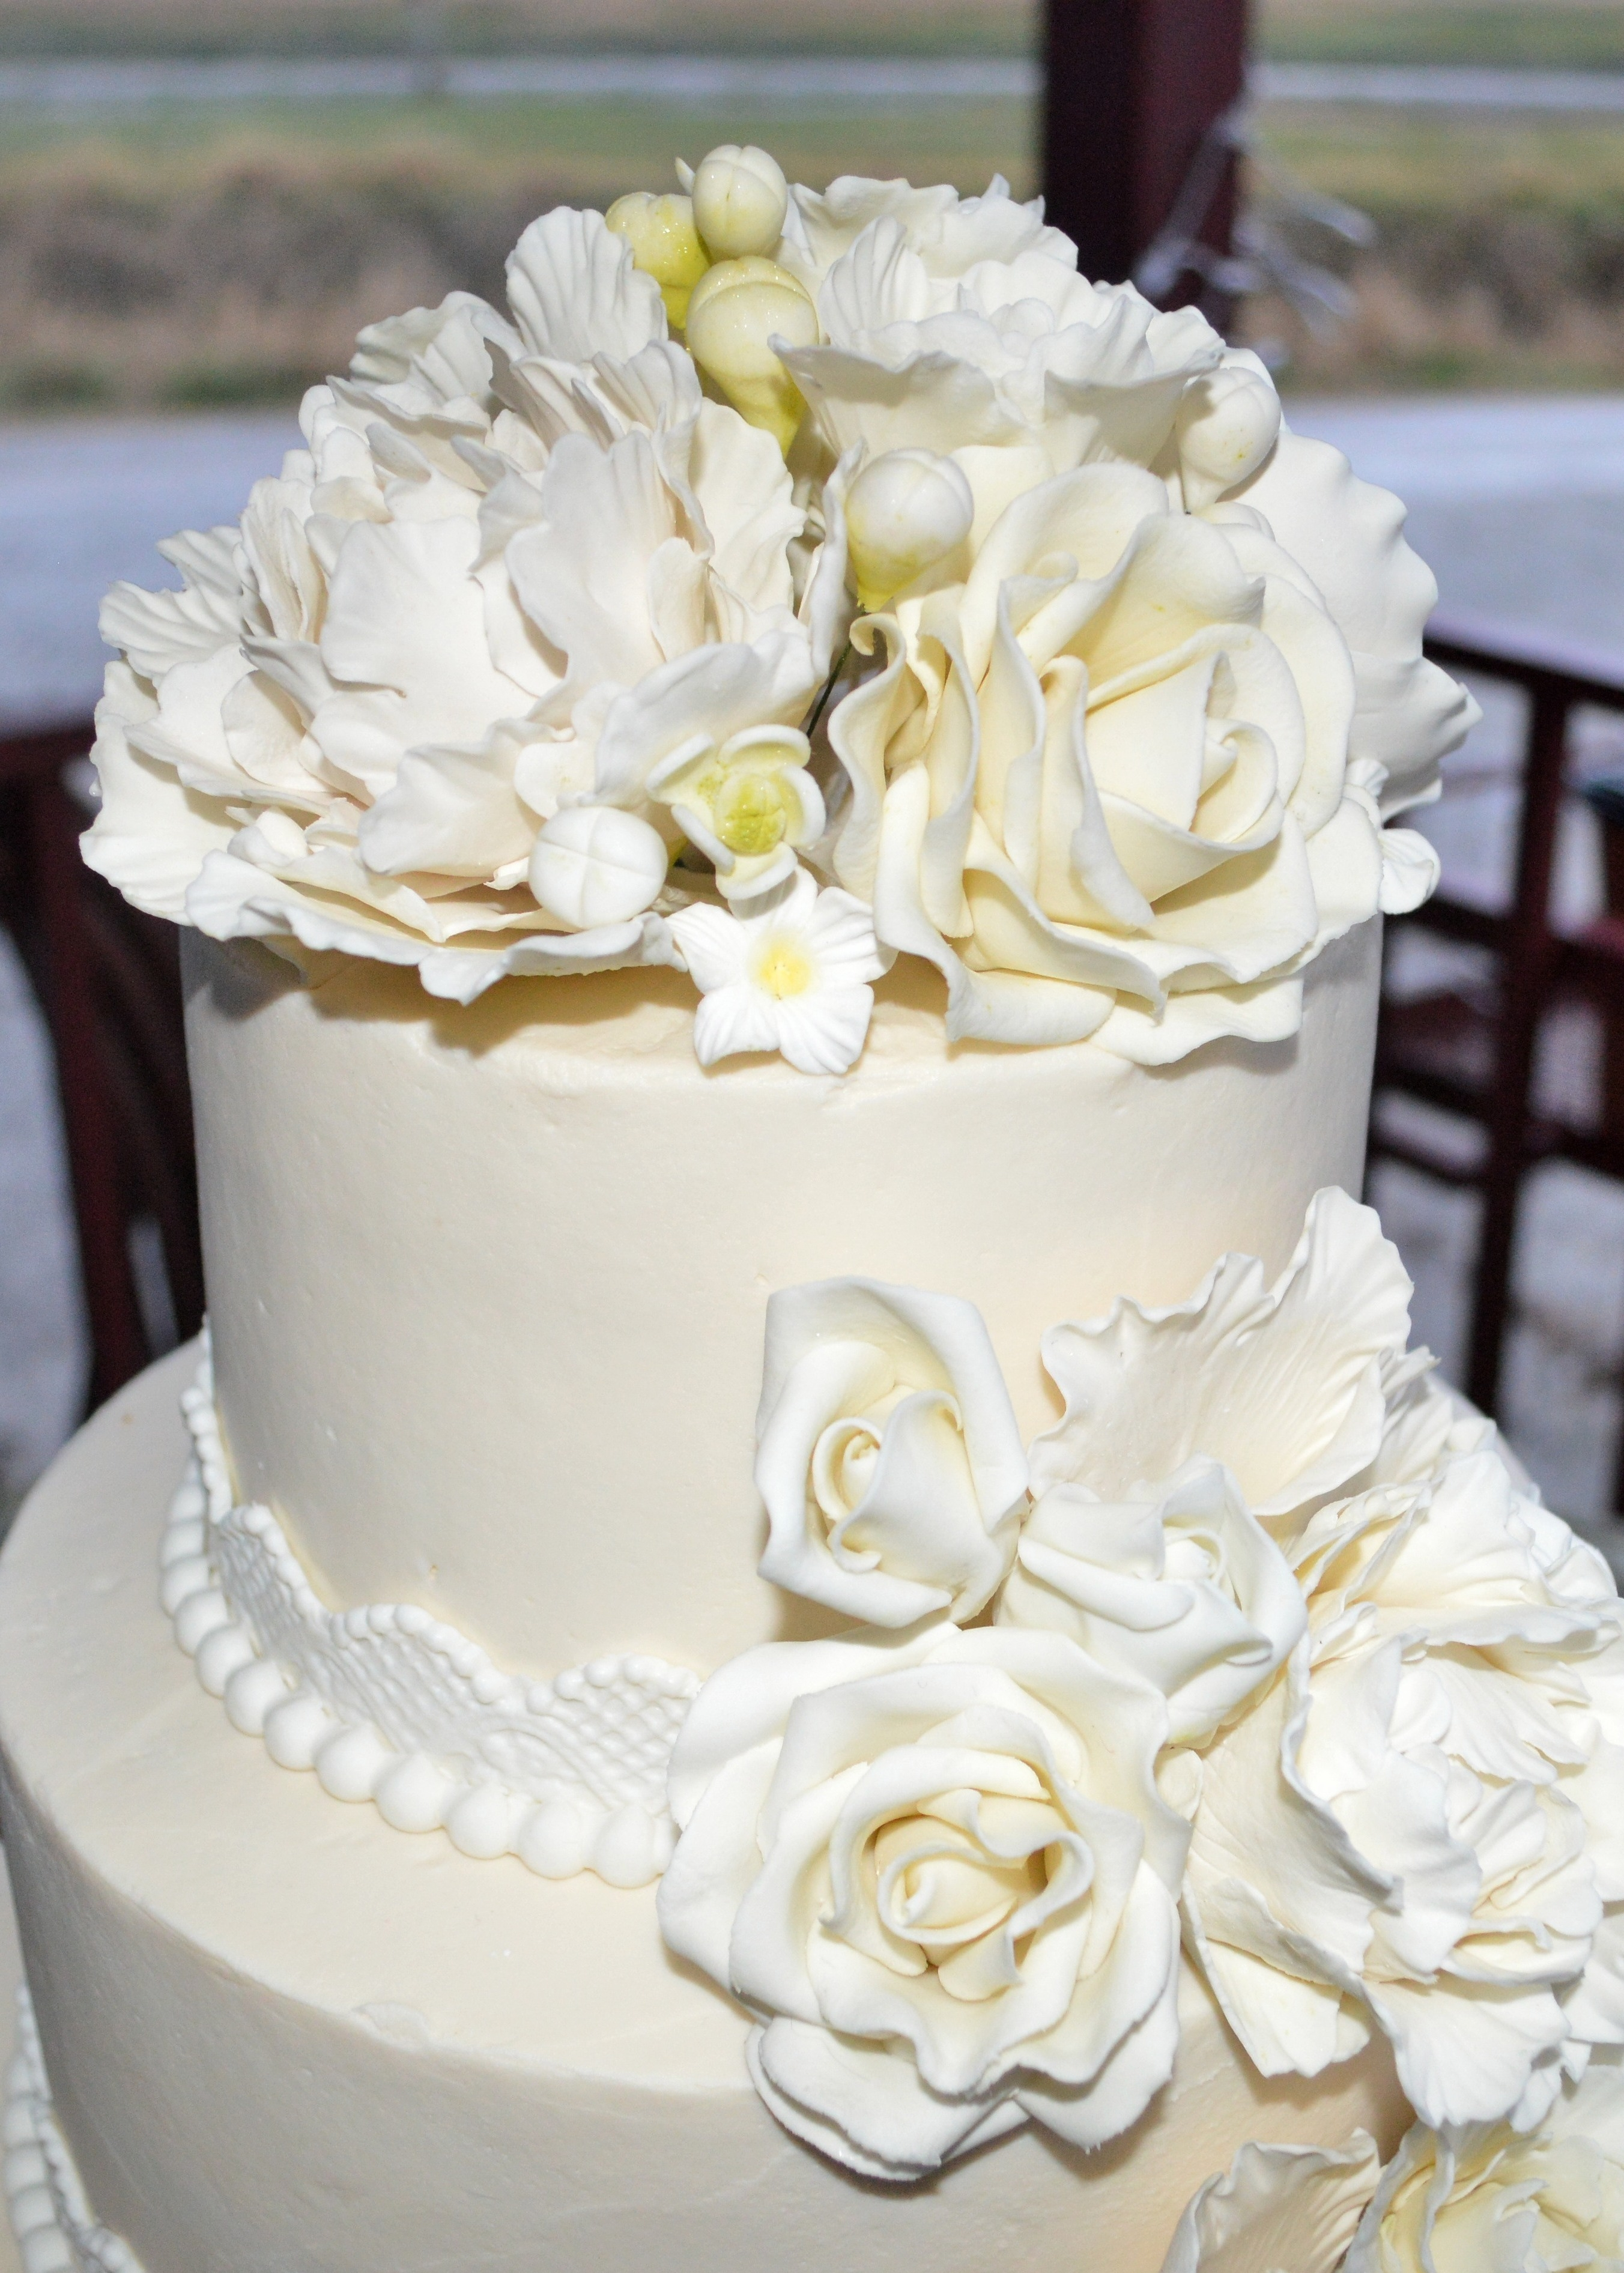 Buttercream Wedding Cake With Fondant Lace Trim And